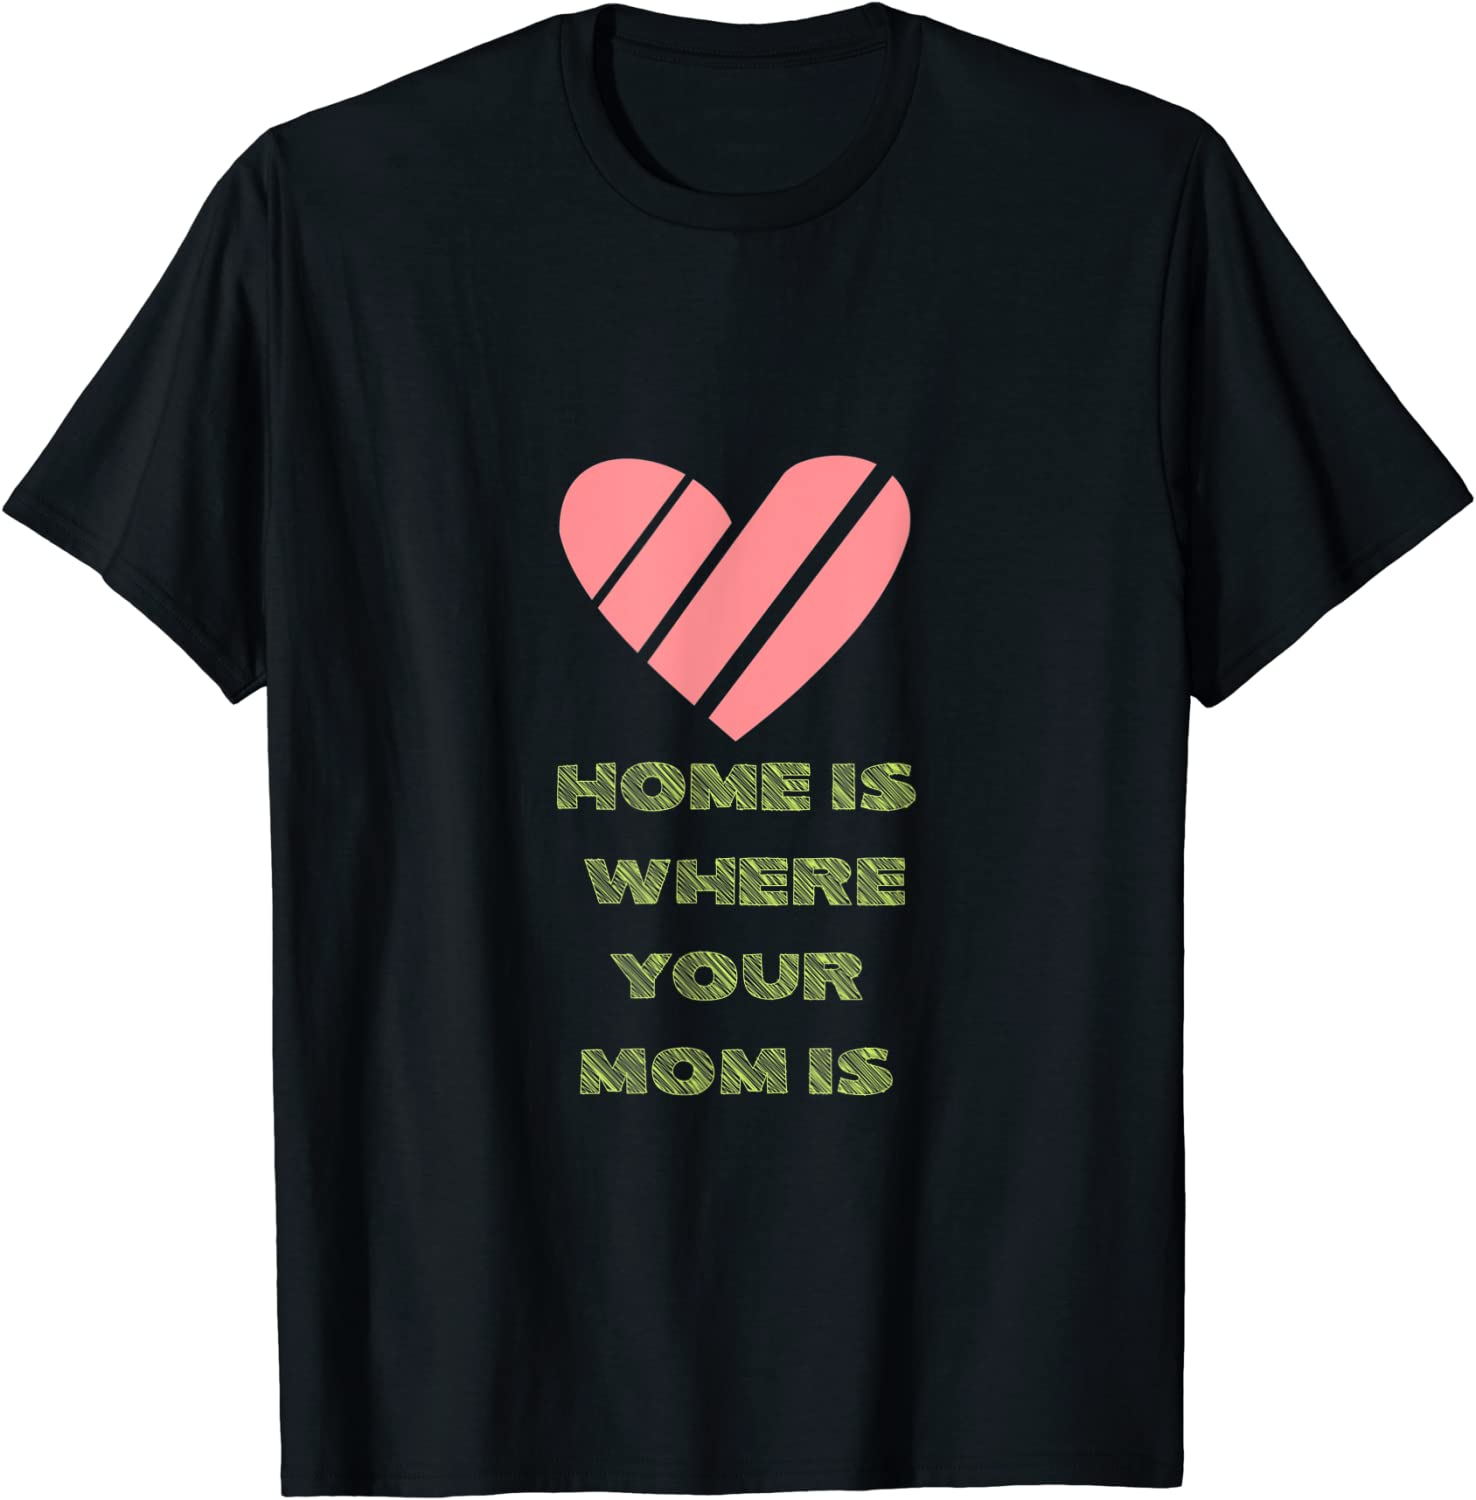 Home is where your mom is Tee T-Shirt